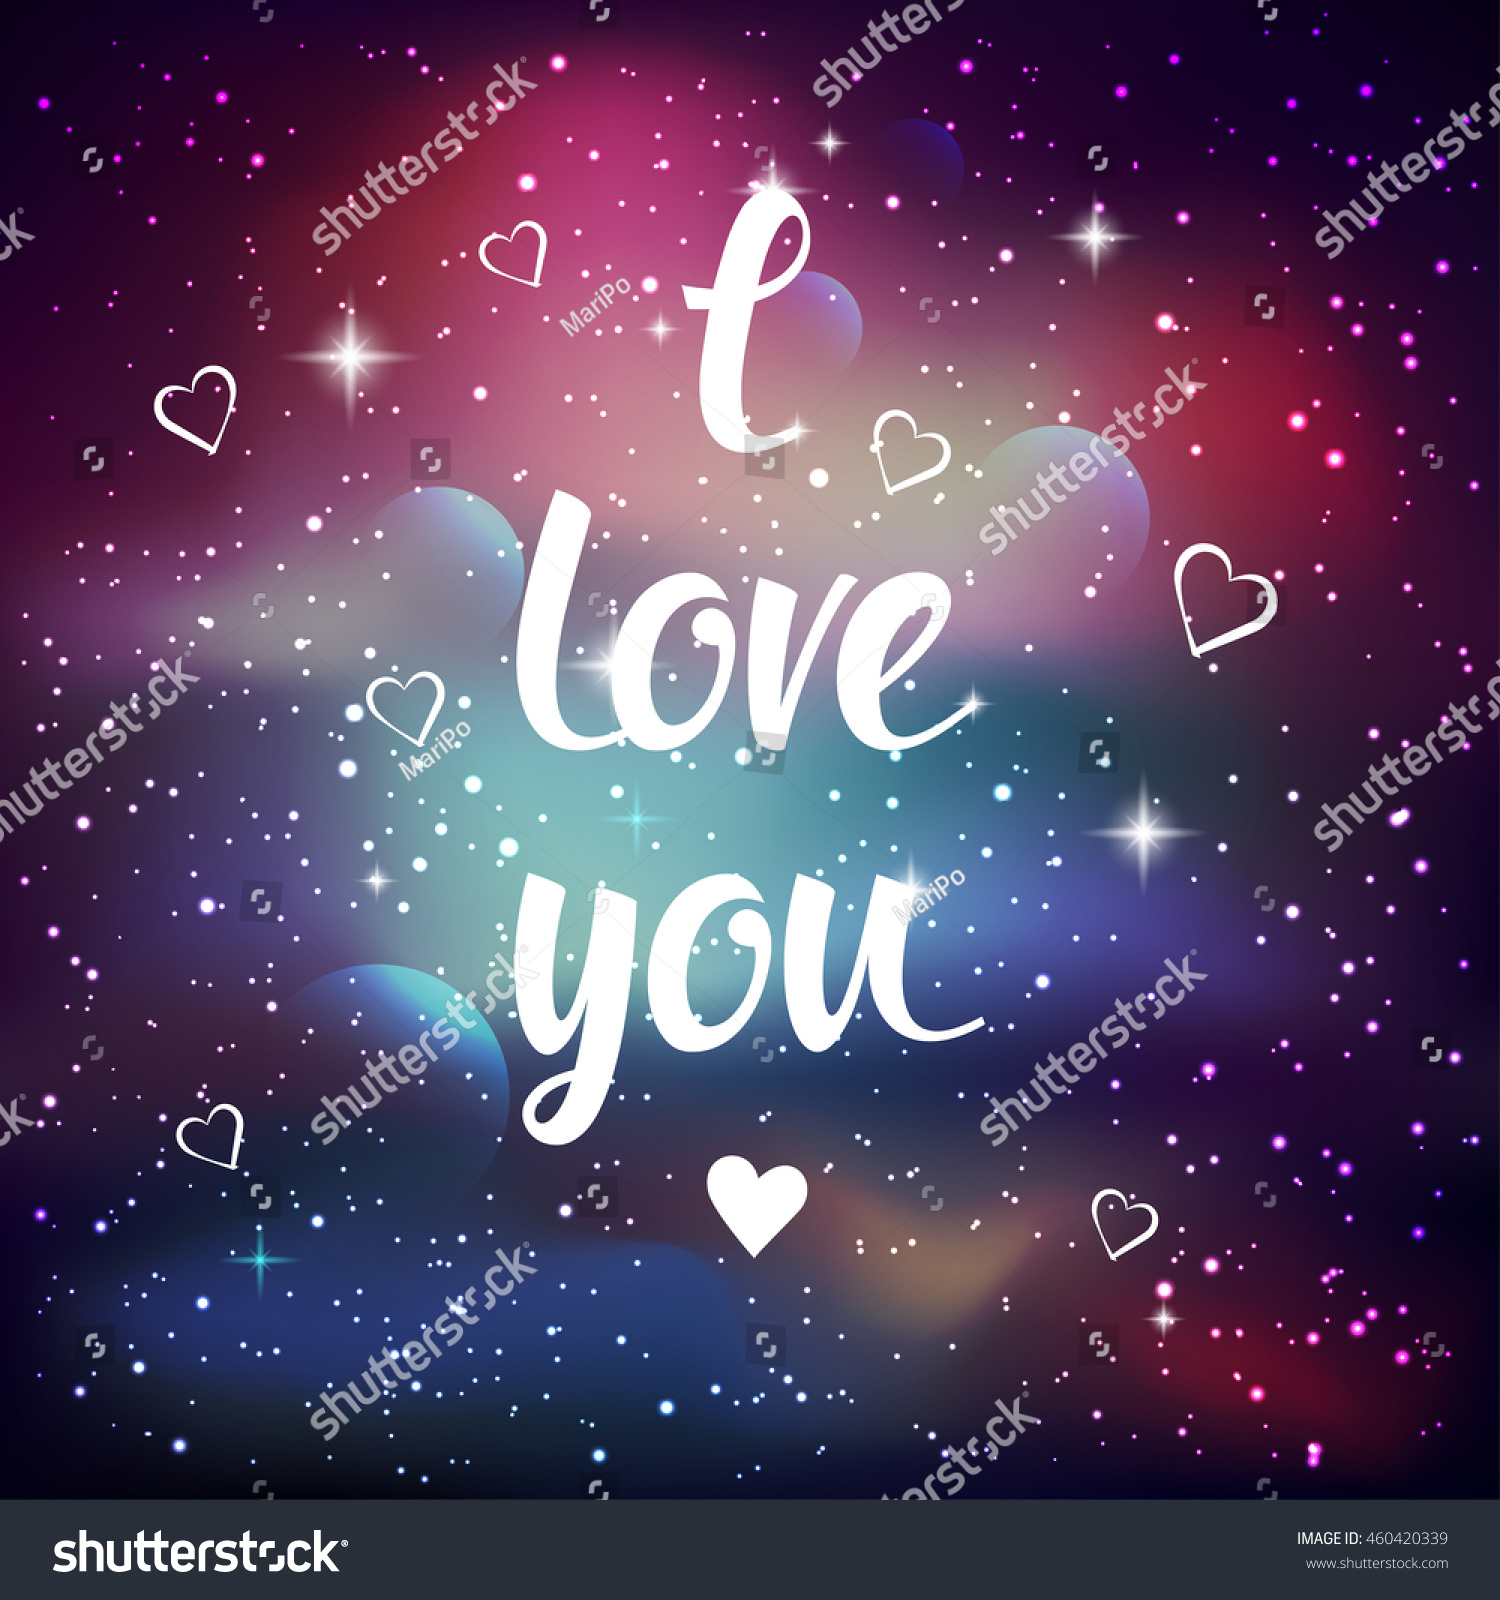 Love Wallpaper For Galaxy E7 : Love You Greeting card Lettering calligraphy Stock Vector 460420339 - Shutterstock